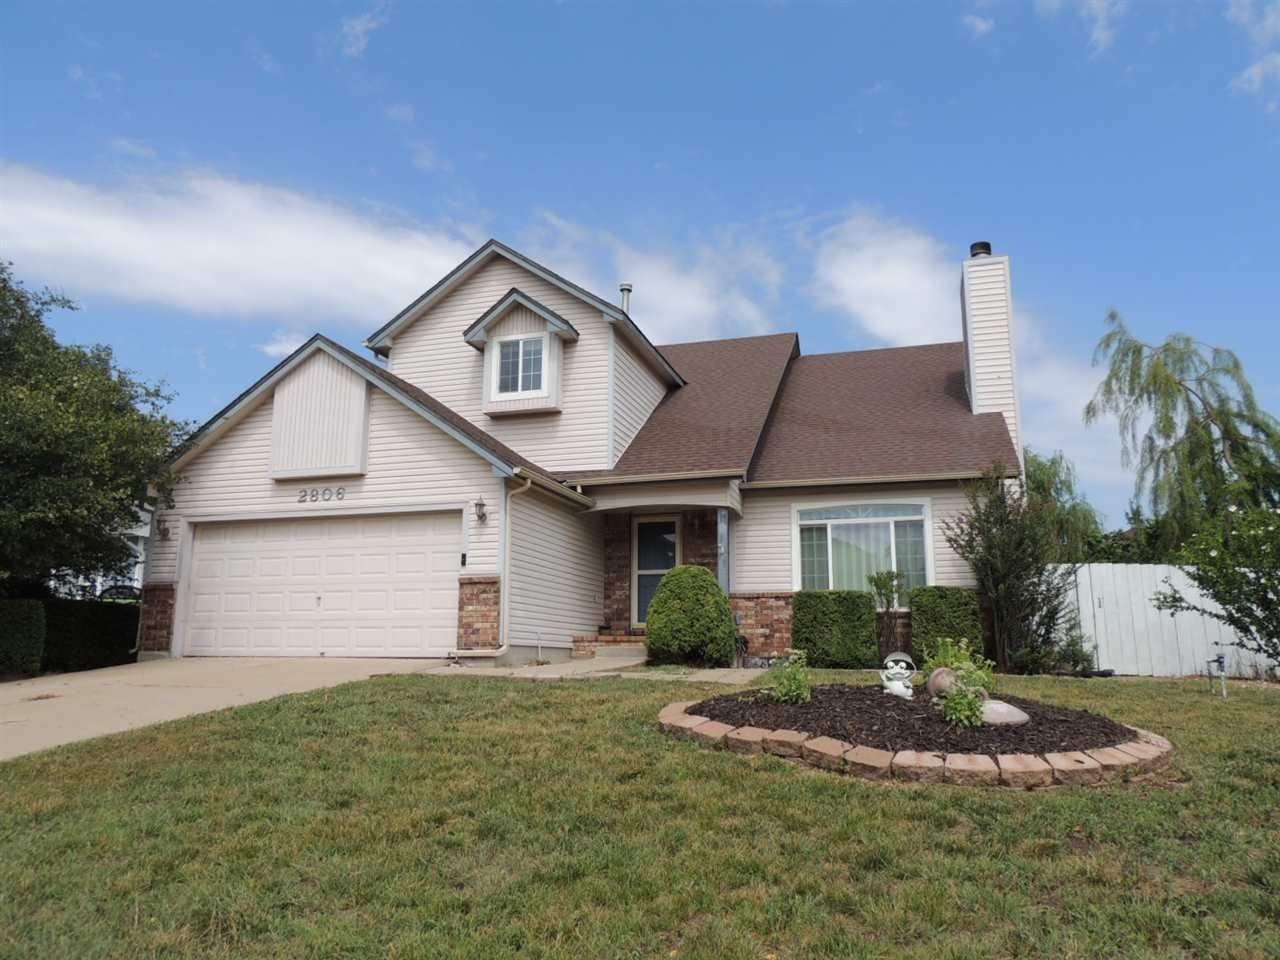 Wichita address, Derby schools!  This grand 2-story home is nestled in the heart of an established n